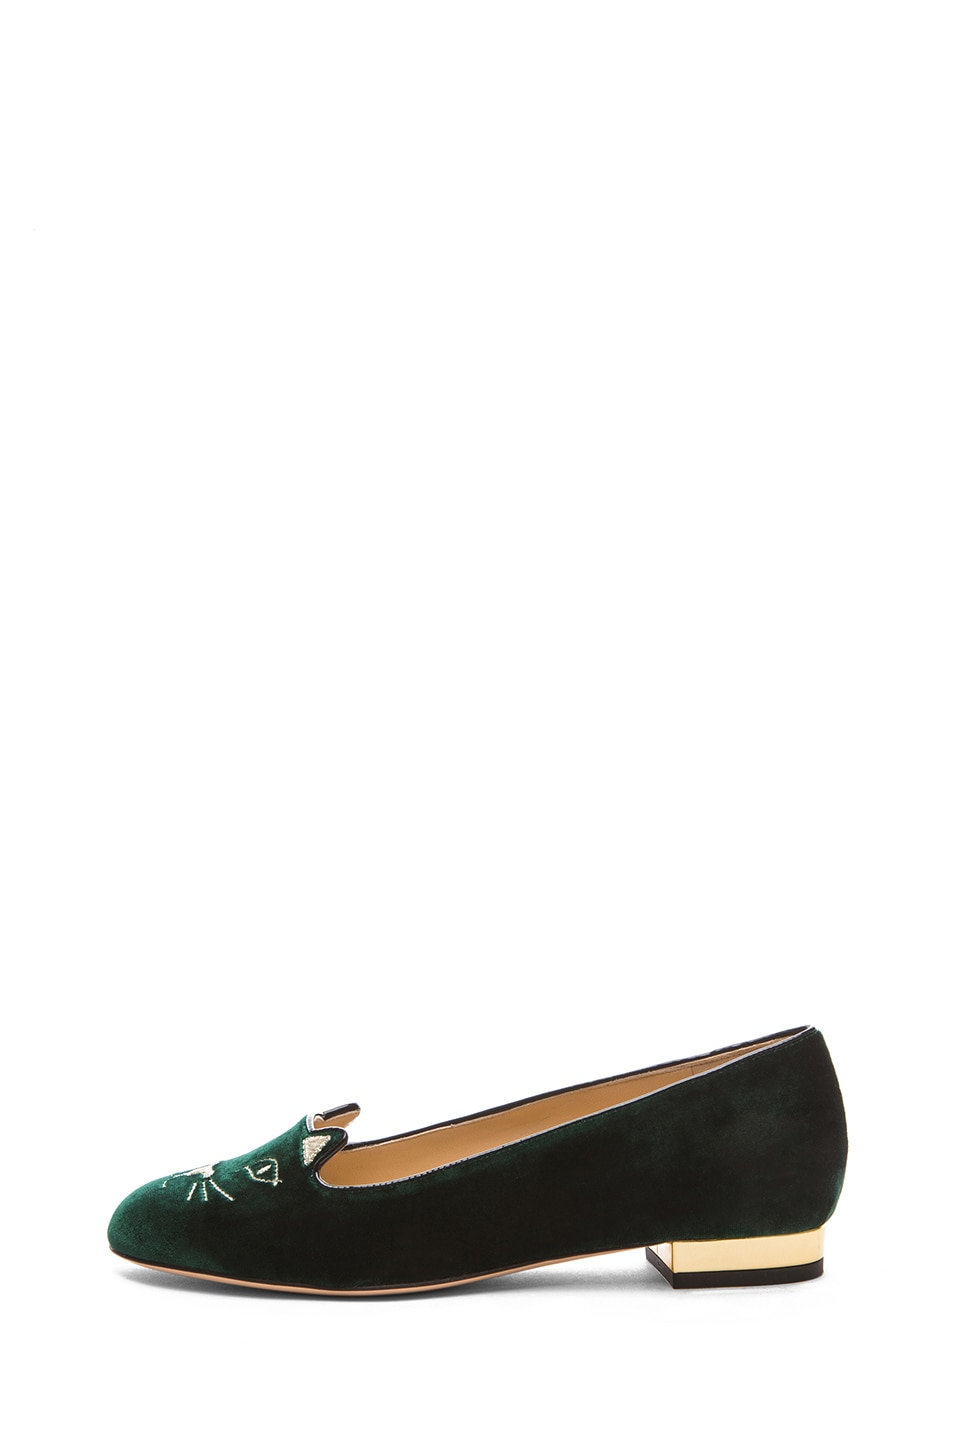 Image 1 of Charlotte Olympia Kitty Flats Suede in Green & Gold